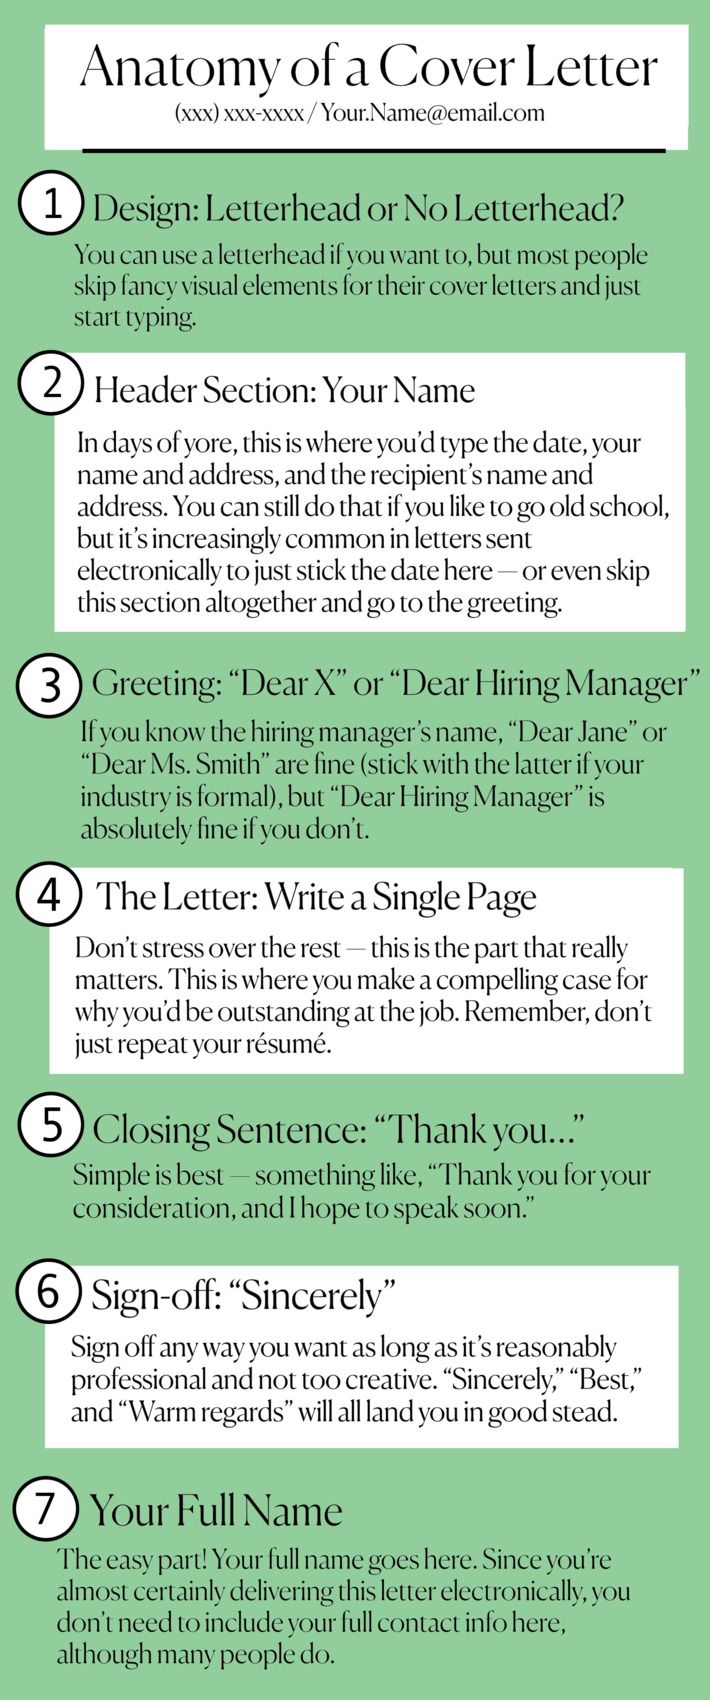 How to Write a Cover Letter That Will Get You a Job Job